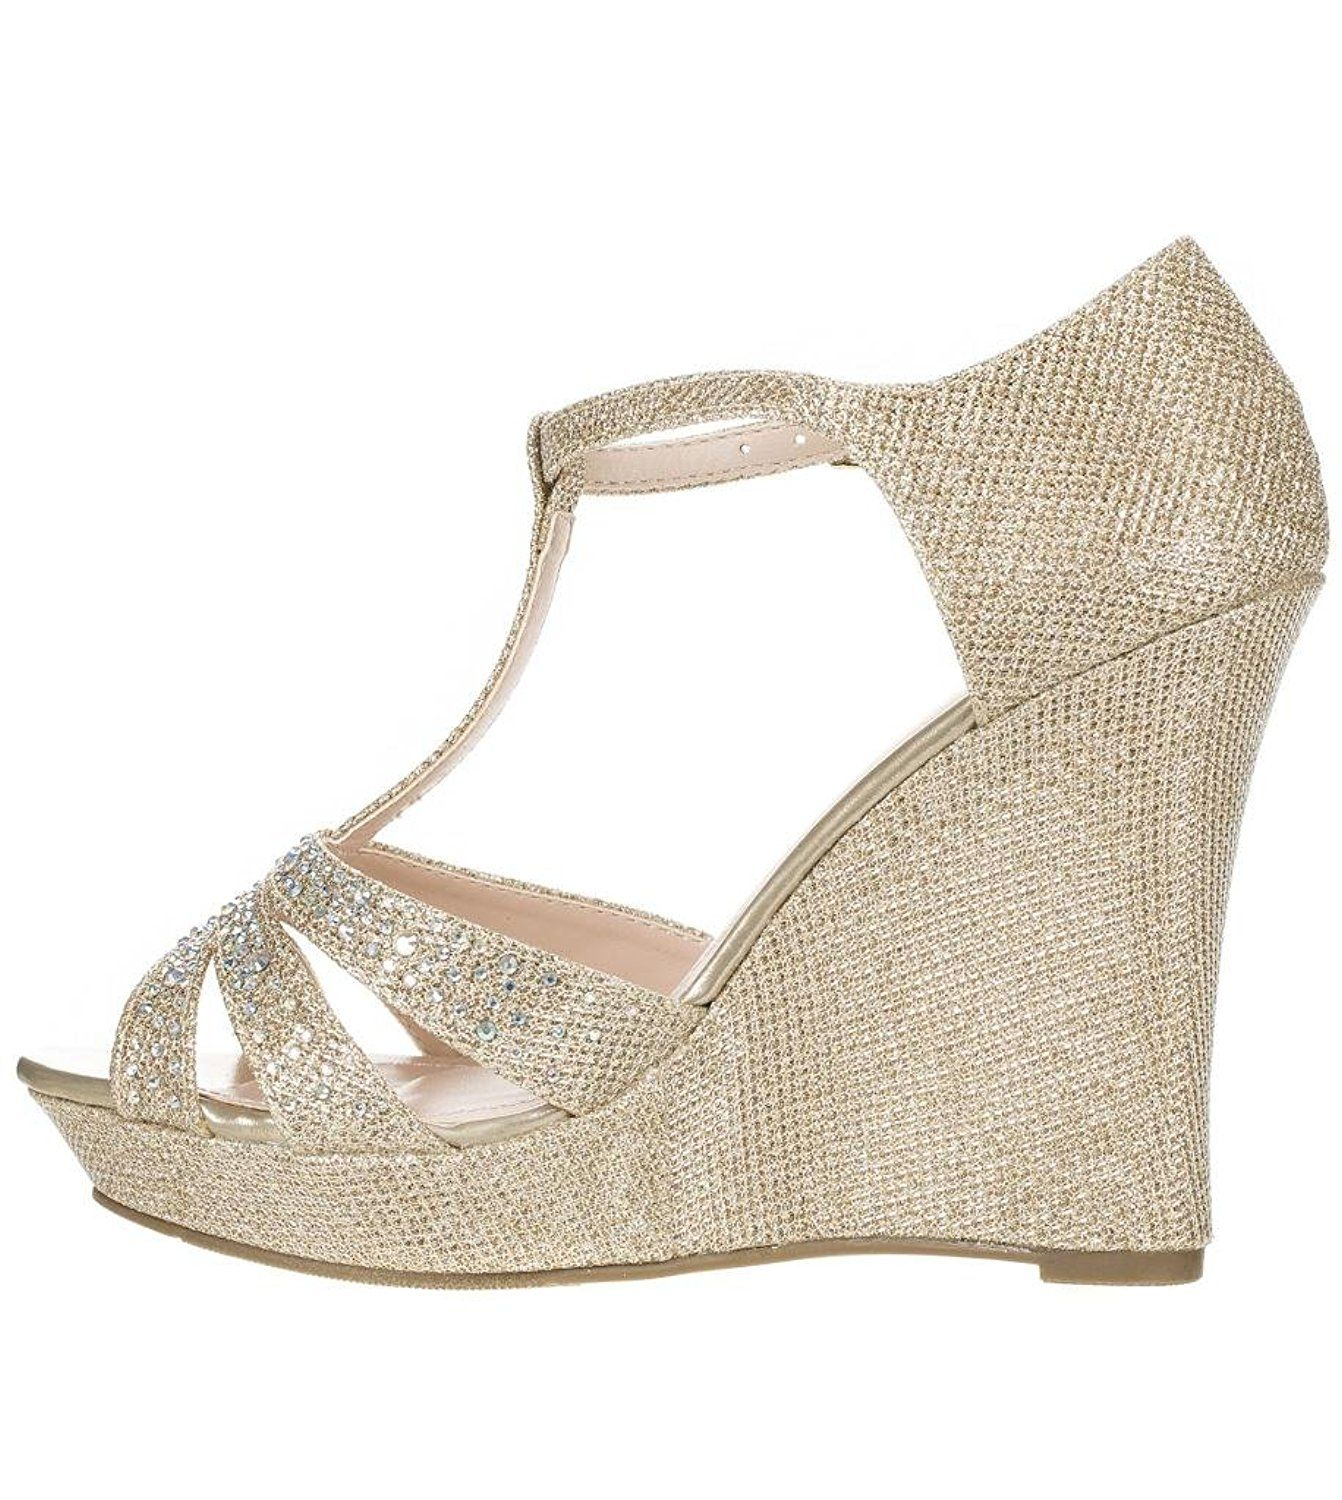 233d667e566 DeBlossom Womens Dressy Glitter Rhinestone T Strap Platform Wedge Sandal  Aalle-2     Click image for more details. (This is an affiliate link)   shoesday